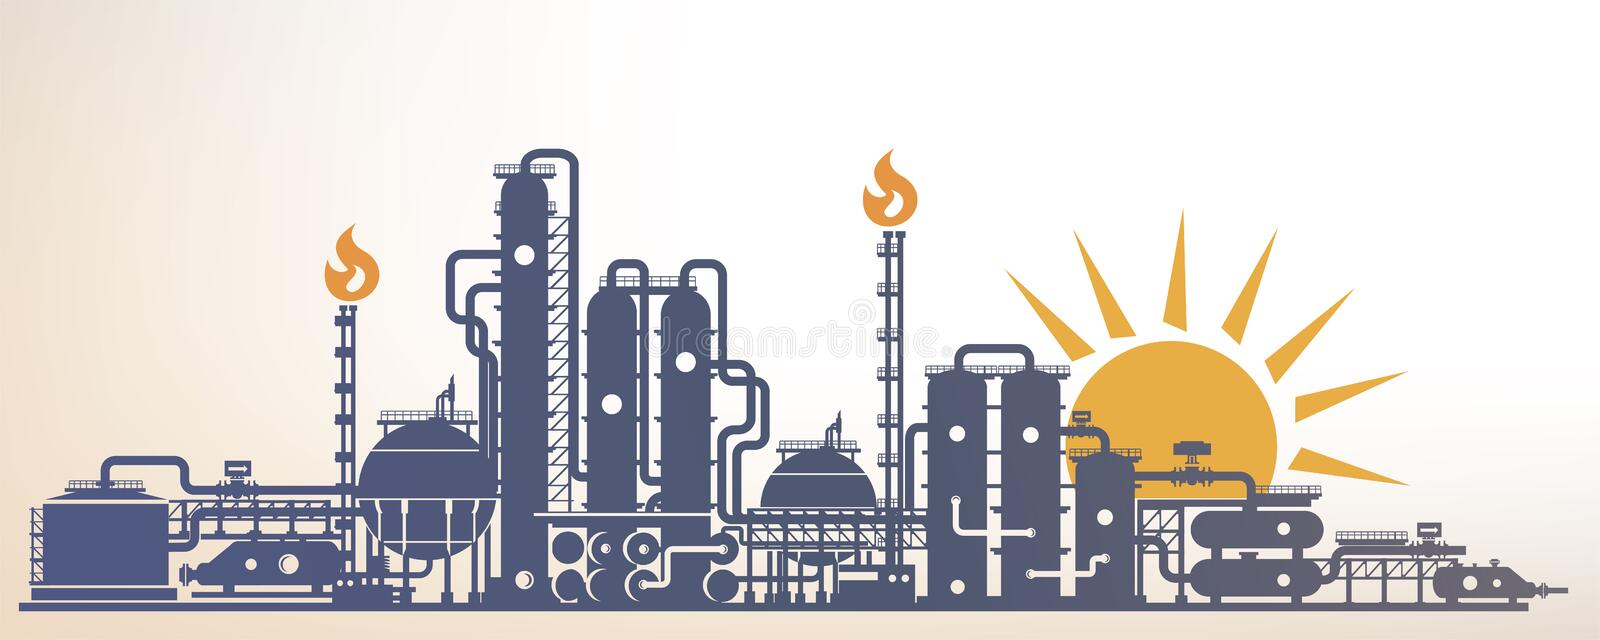 Chemical, petrochemical or processing plant royalty free illustration